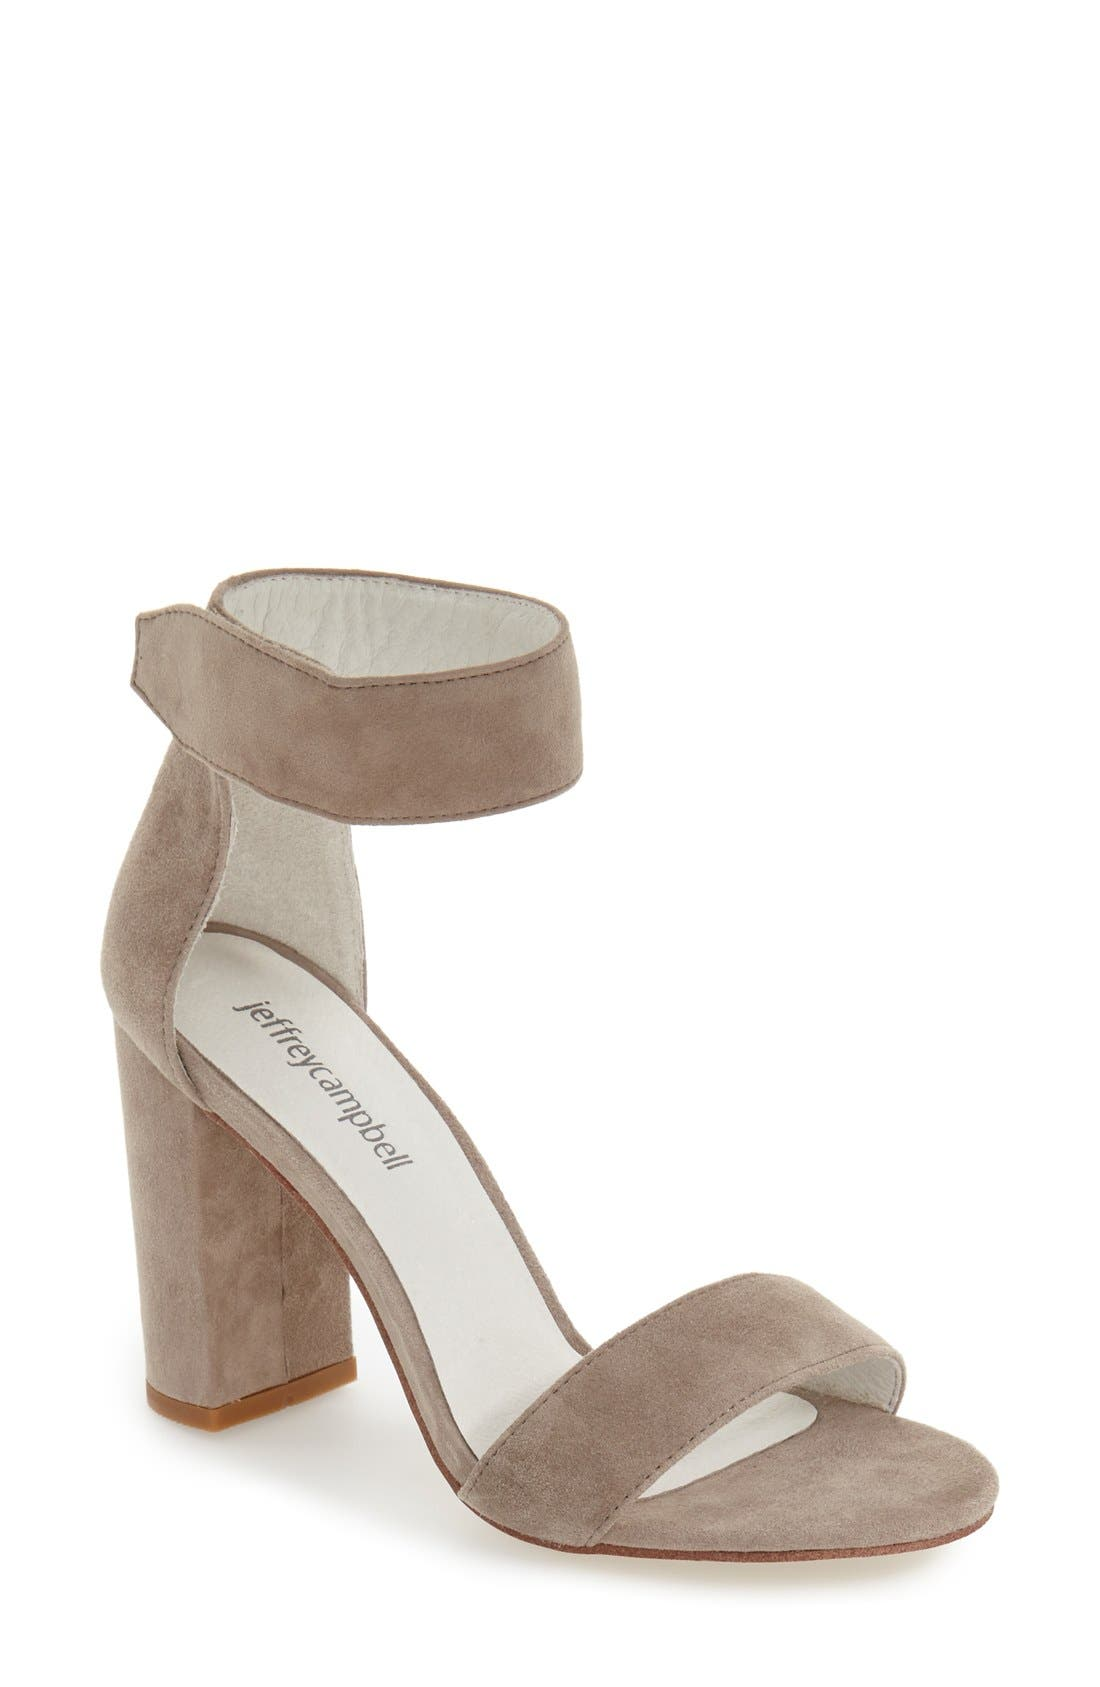 'Lindsay' Ankle Strap Sandal,                         Main,                         color, TAUPE SUEDE